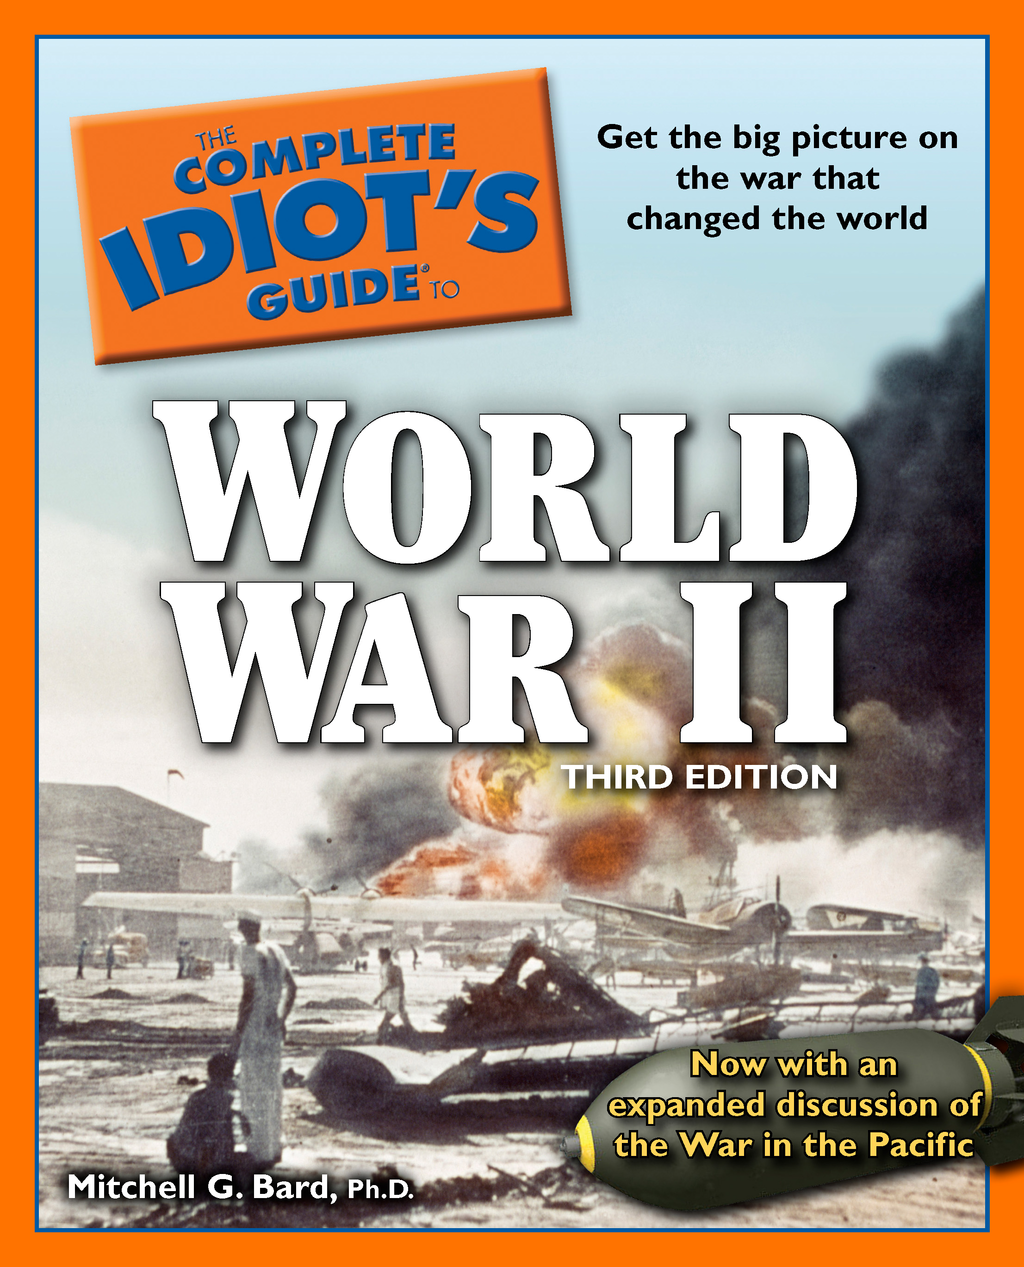 The Complete Idiot's Guide to World War II, 3rd Edition By: Mitchell Bard